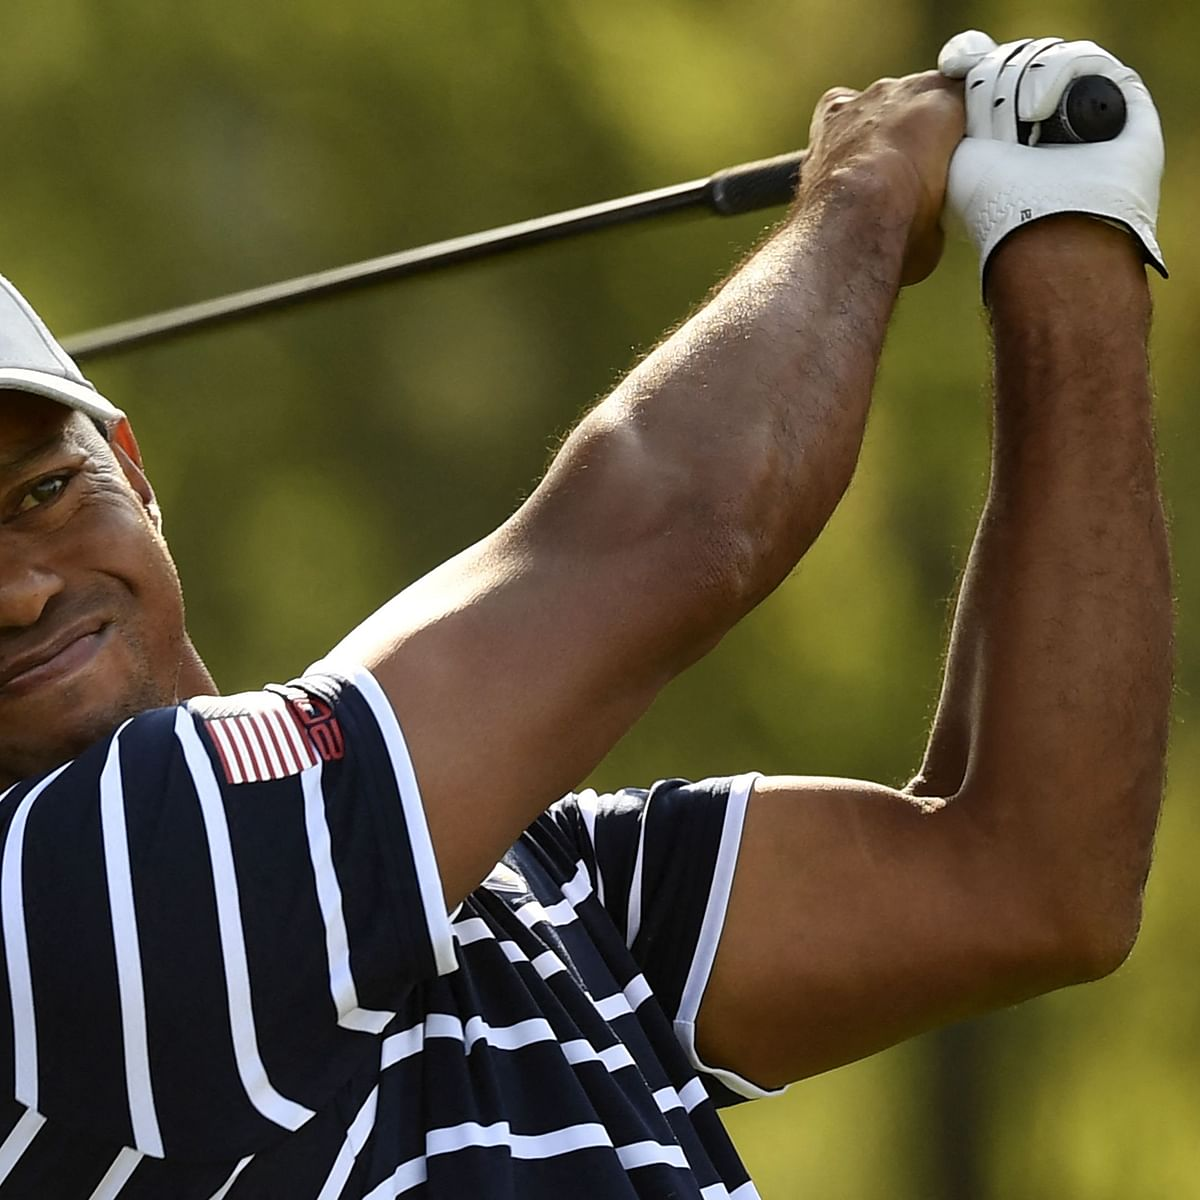 From Barack Obama to Mike Tyson - Report of Tiger Woods' car crash evokes concern and prayers for speedy recovery